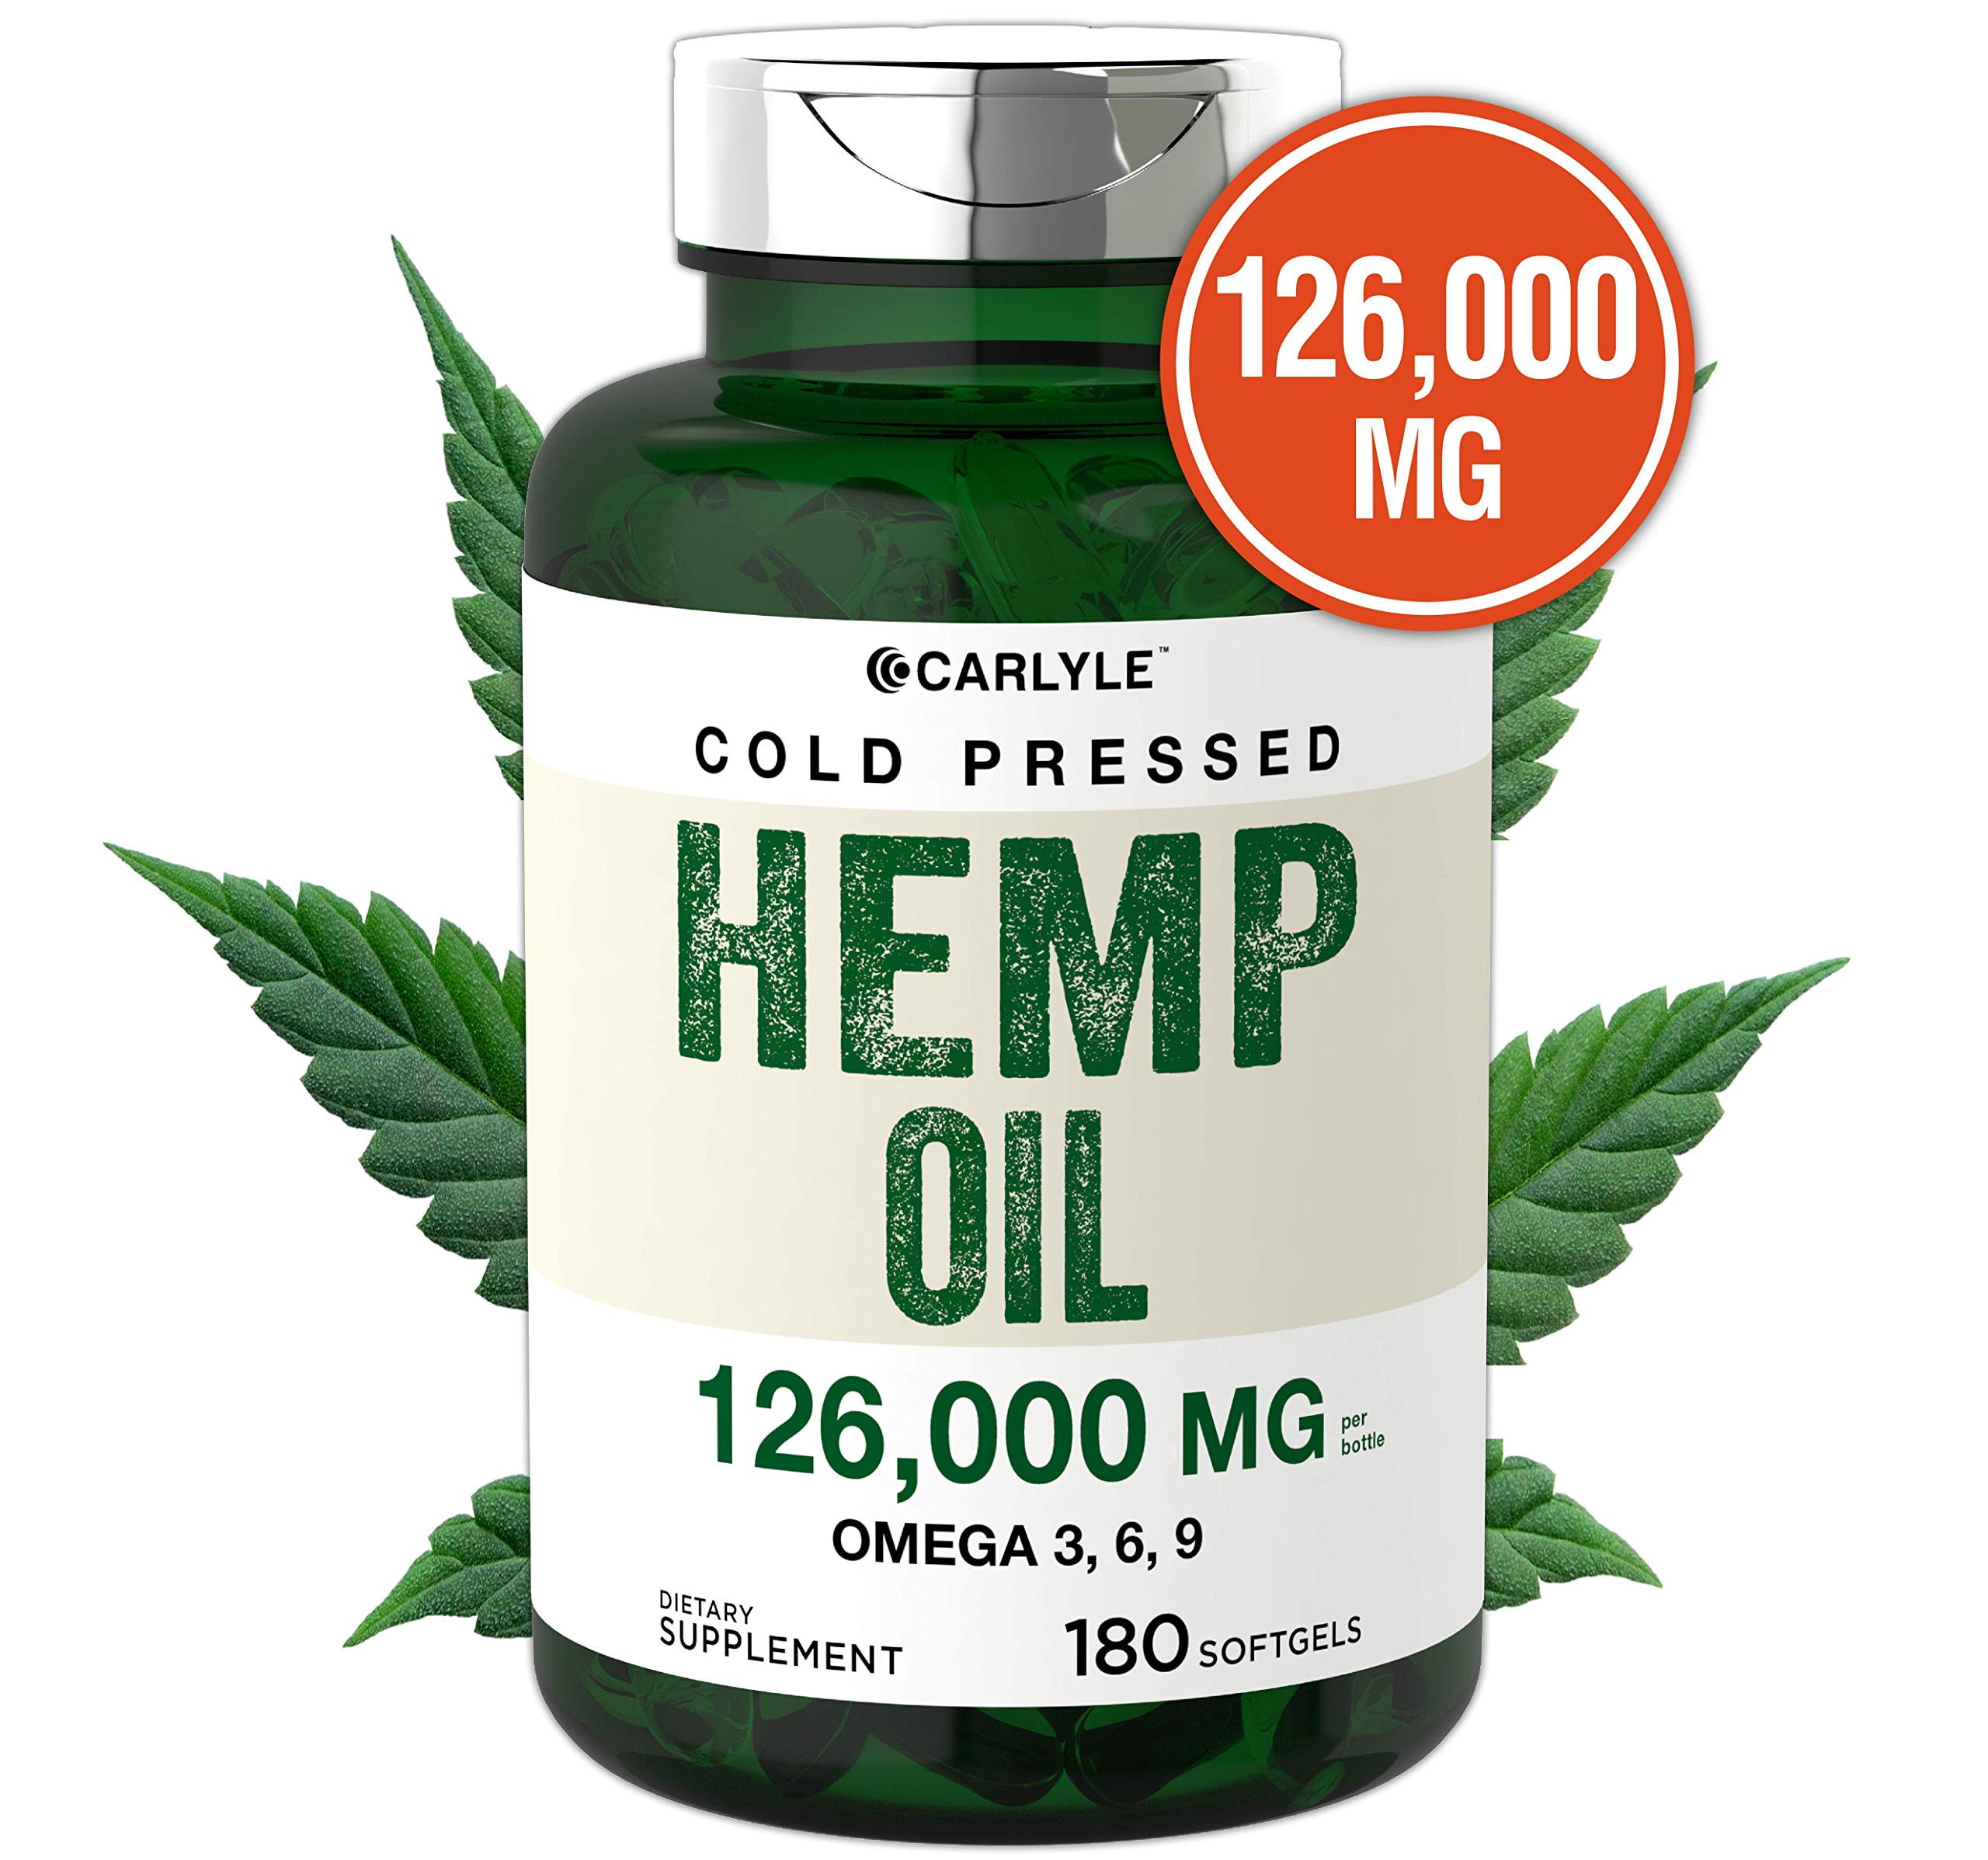 Hemp Oil Capsules   126,000 mg Per Bottle   180 Softgels   Max Potency   Non-GMO, Gluten Free   Cold Pressed Supplement from Hemp Seeds   by Carlyle by Carlyle